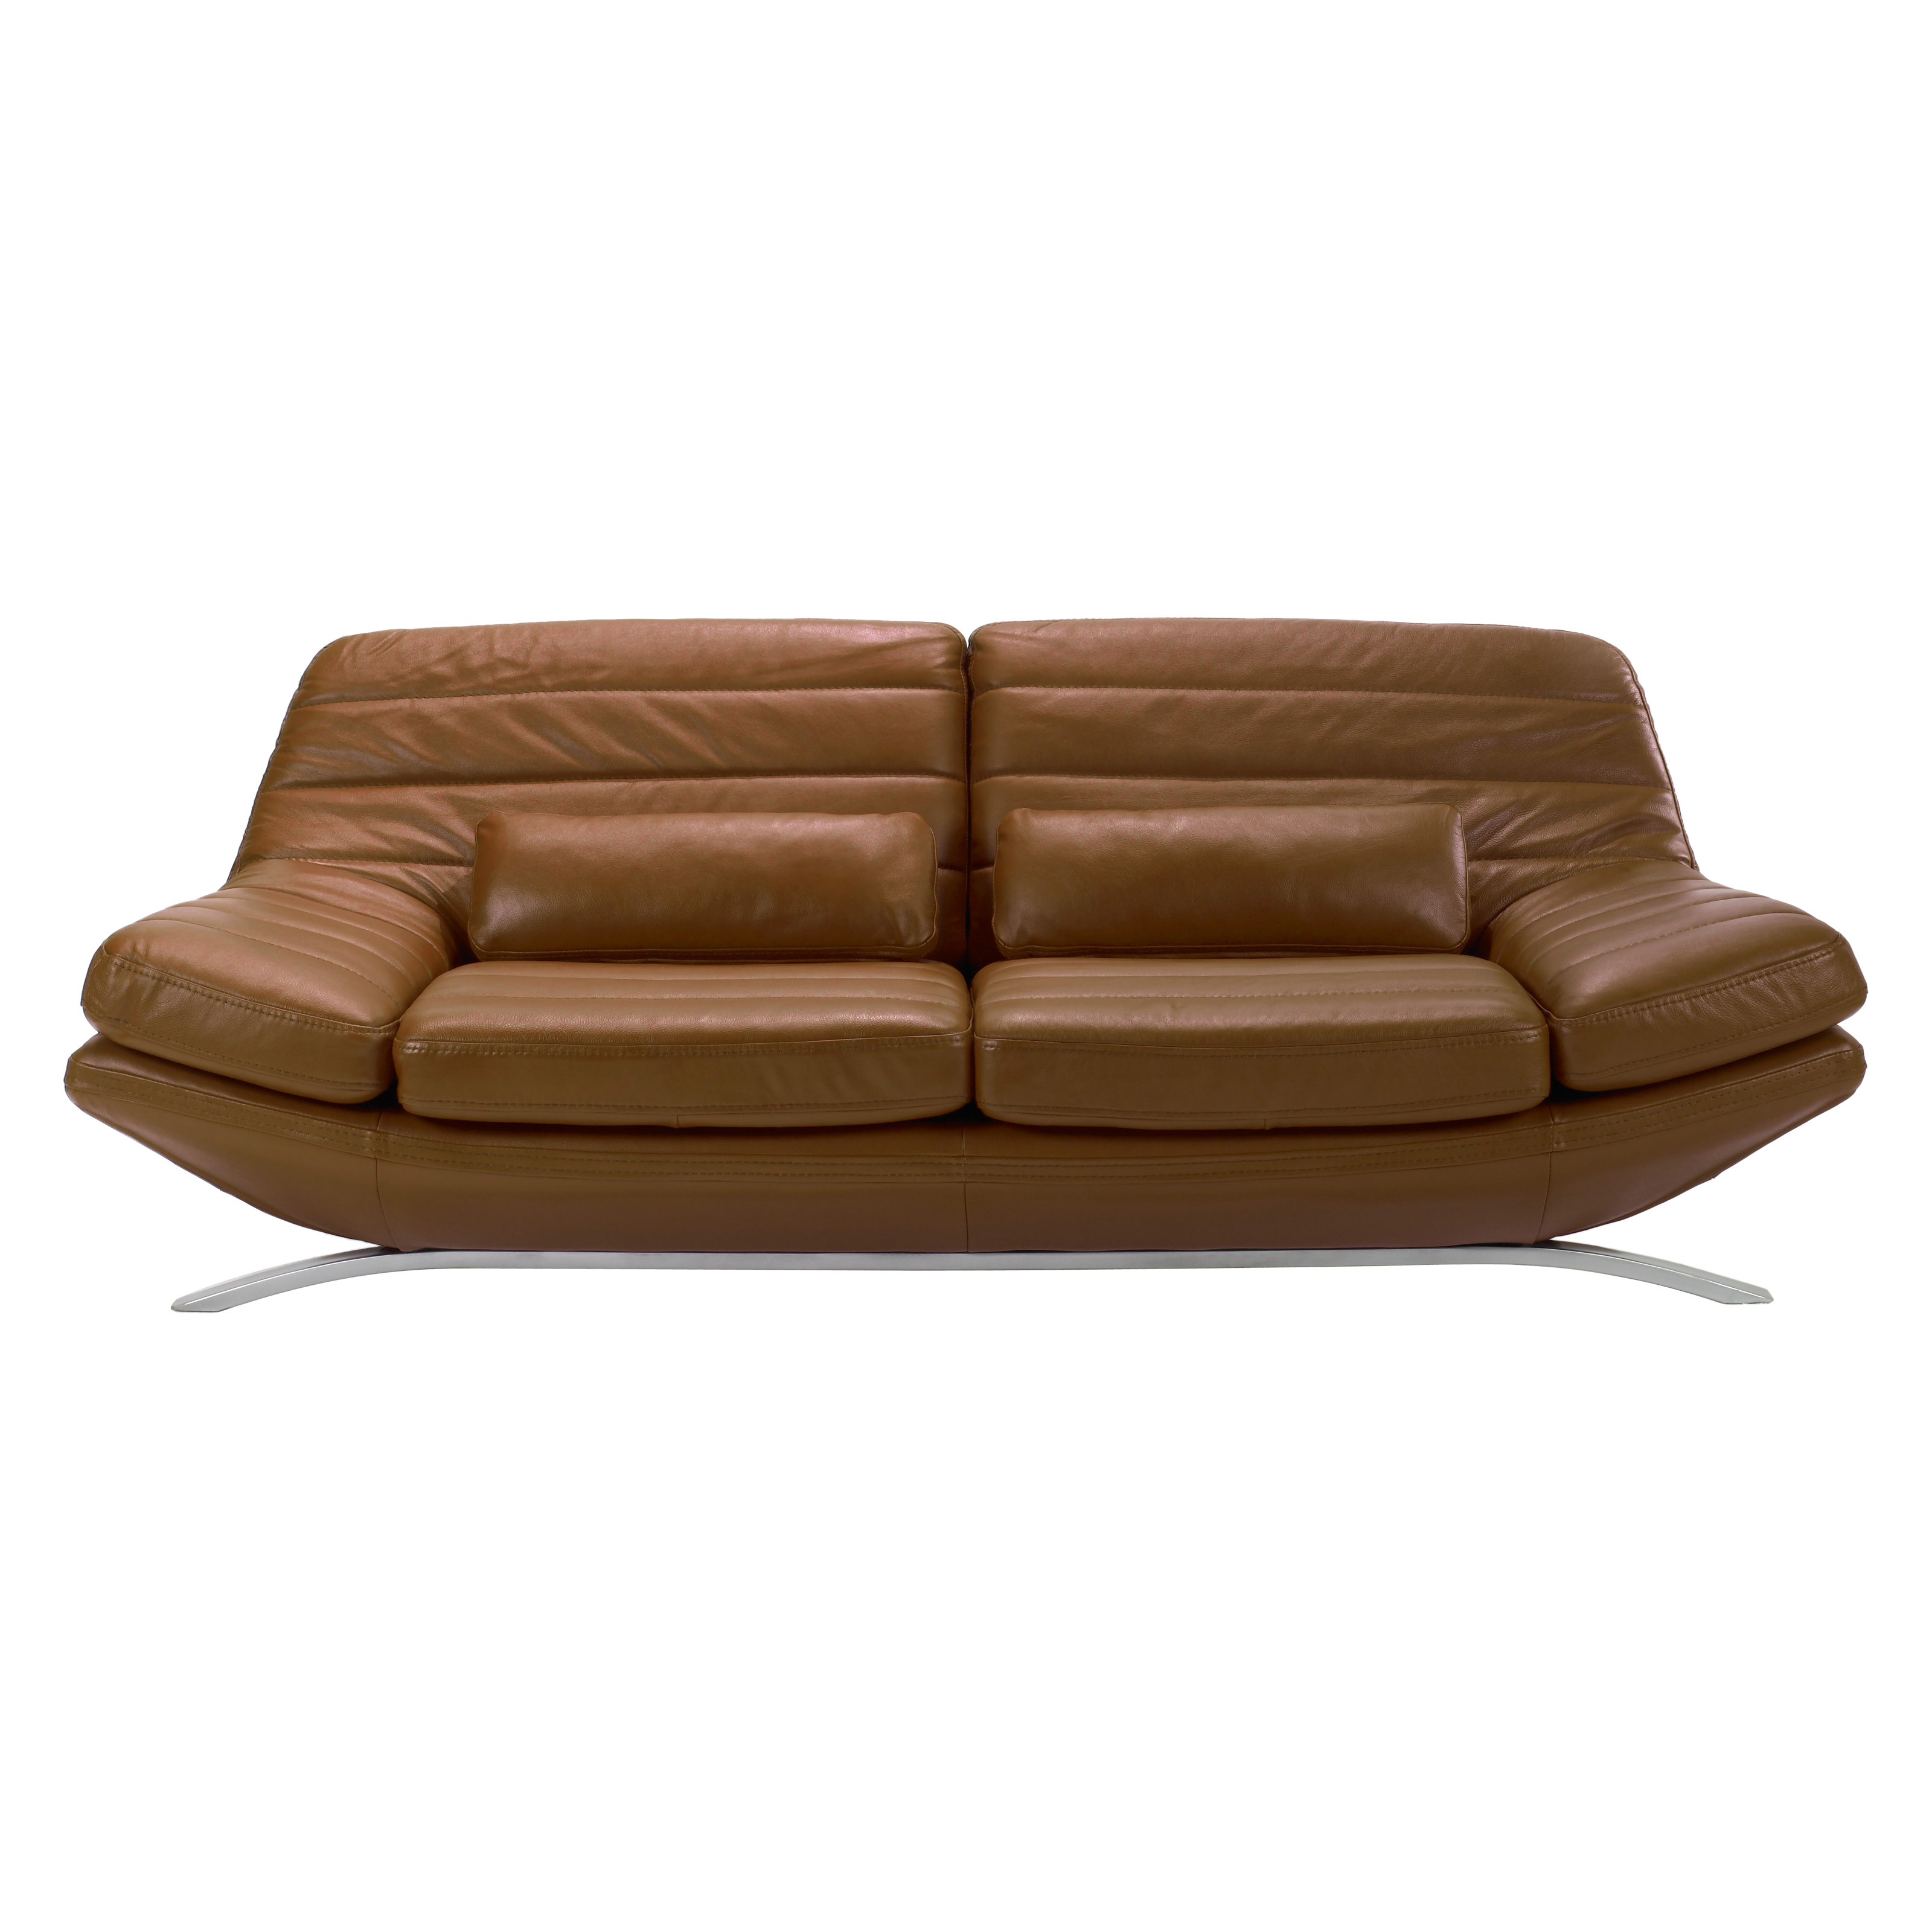 Armen Living Riviera Whiskey Leather Sofa At Hayneedle